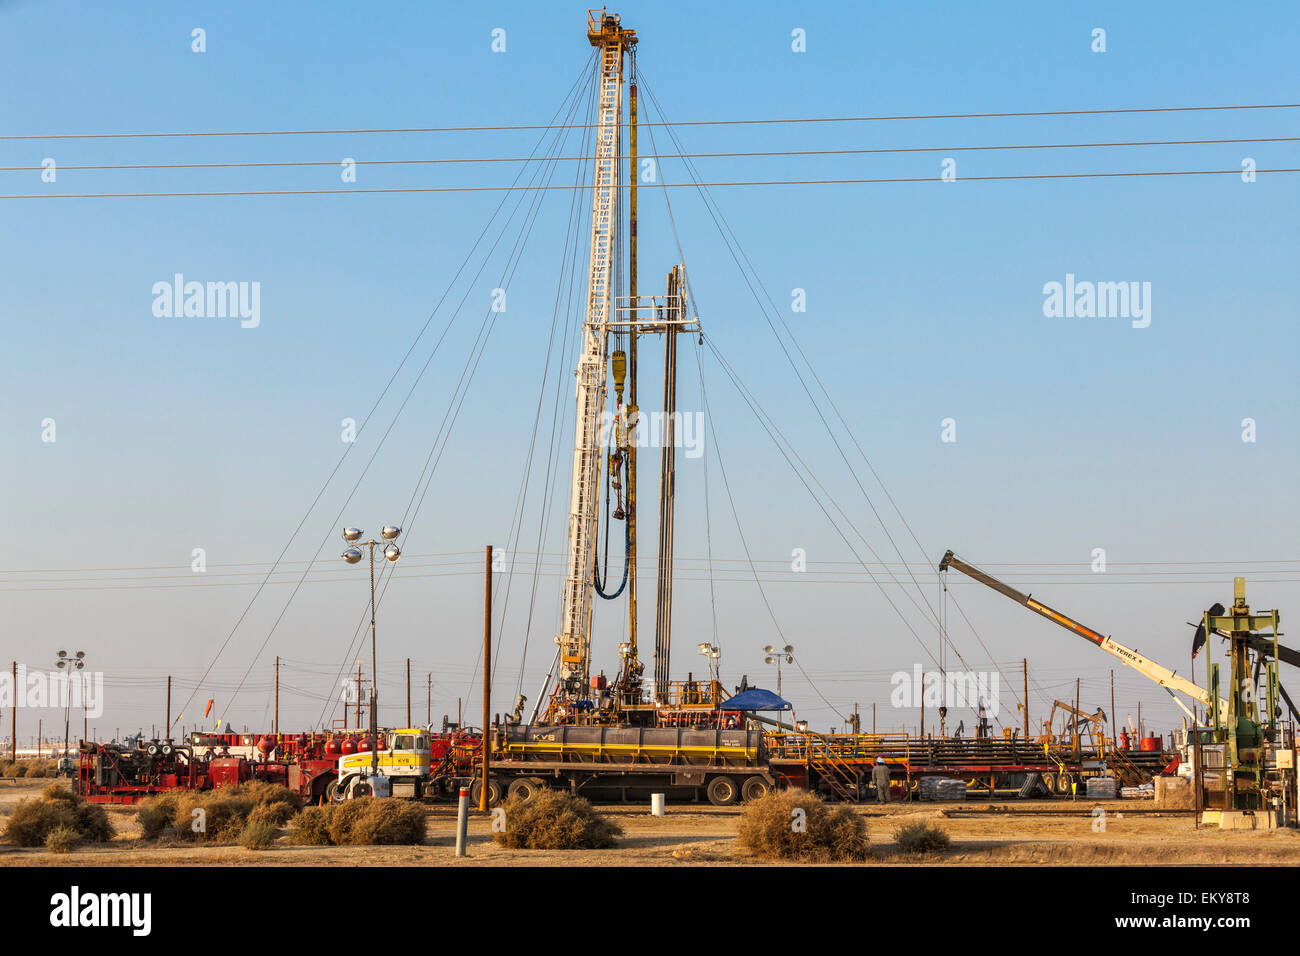 Well stimulation activity on oil well. Lost Hills Oil Field and hydraulic fracking site, Monterey Shale. Kern County, - Stock Image